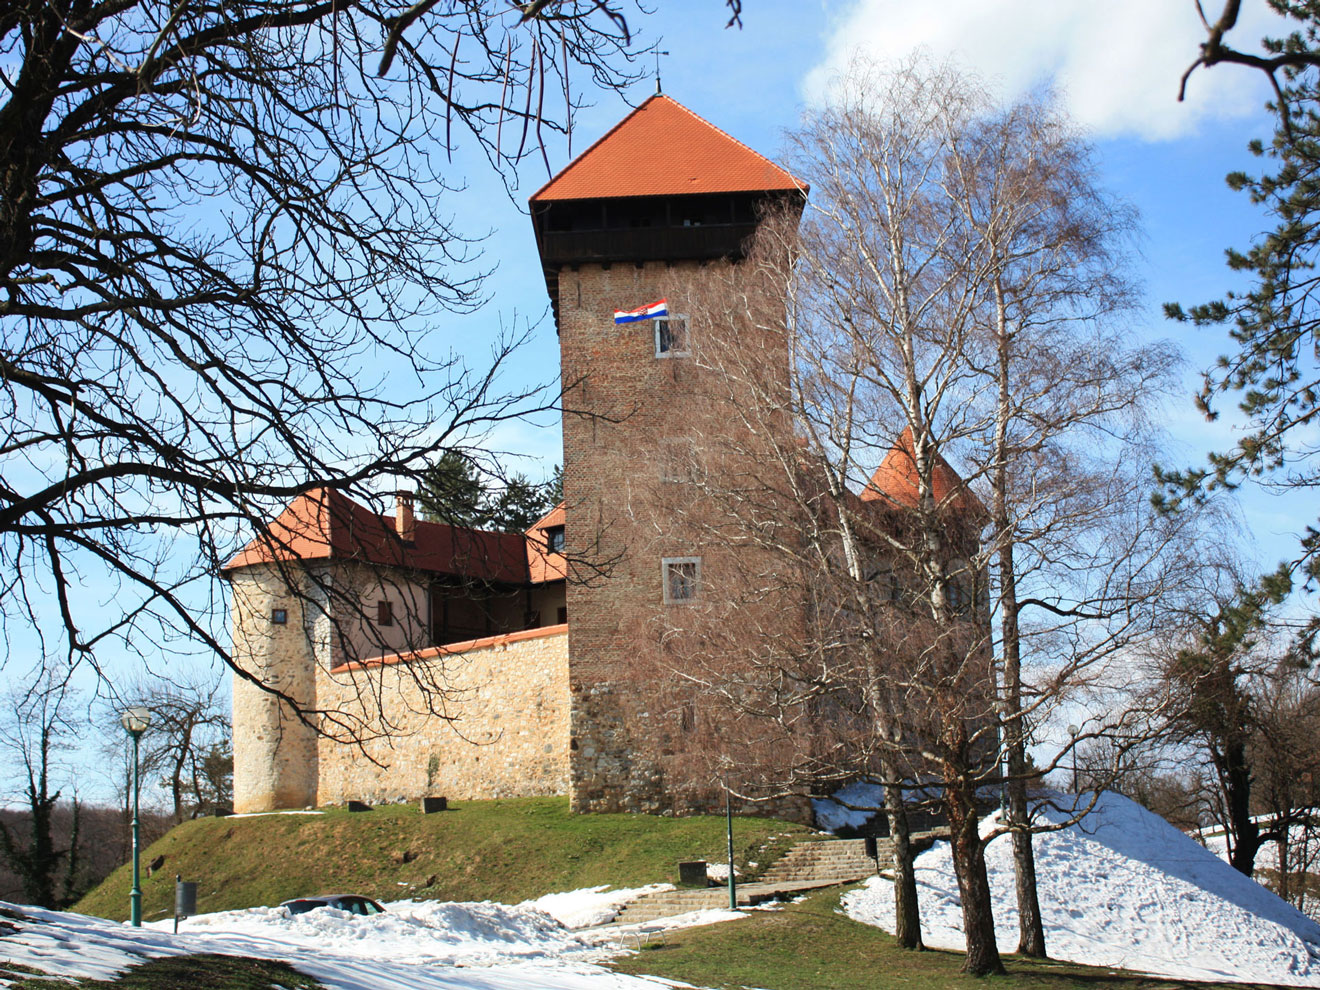 A medieval stone-built castle standing on a hill